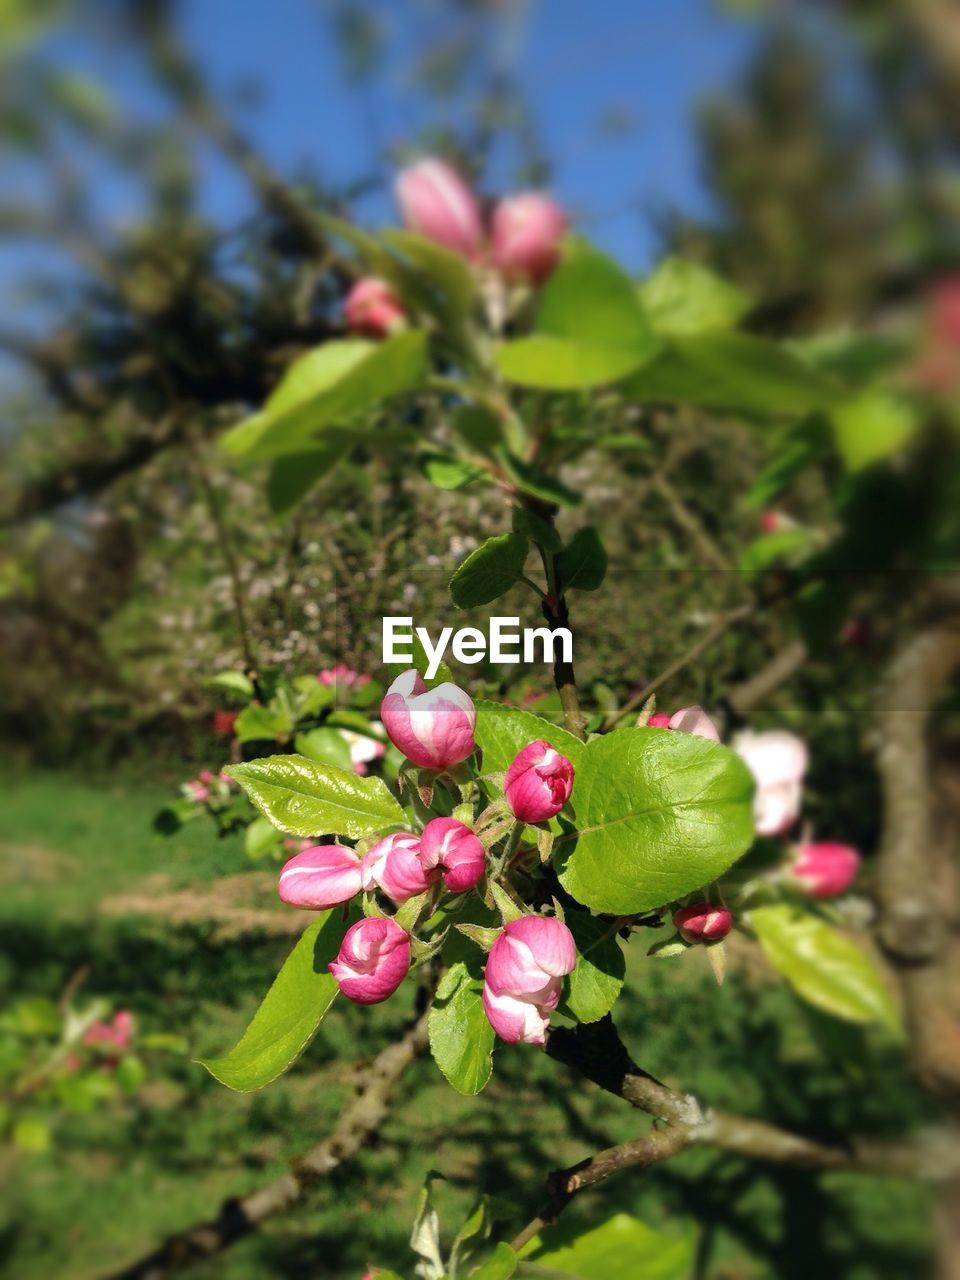 growth, beauty in nature, nature, flower, freshness, green color, fragility, pink color, outdoors, focus on foreground, day, close-up, no people, plant, leaf, petal, tree, branch, flower head